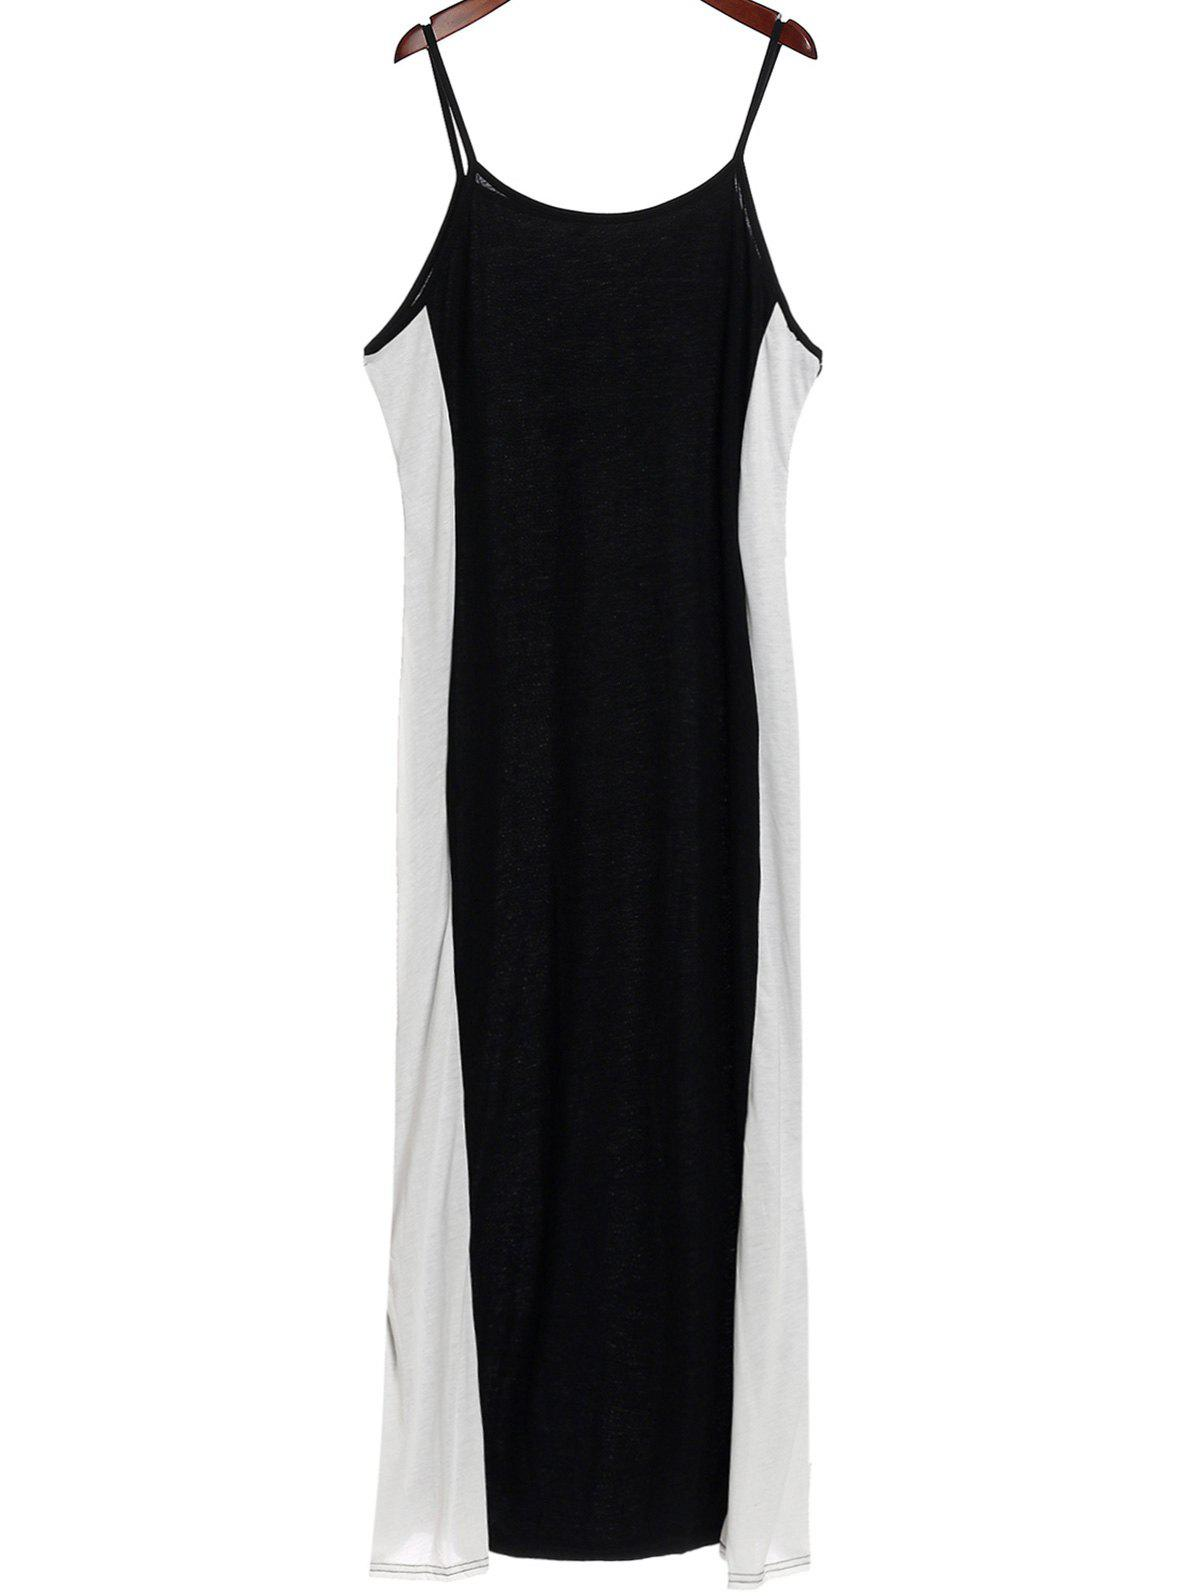 Sexy Spaghetti Strap Slimming Color Block Women's Dress - WHITE/BLACK 3XL